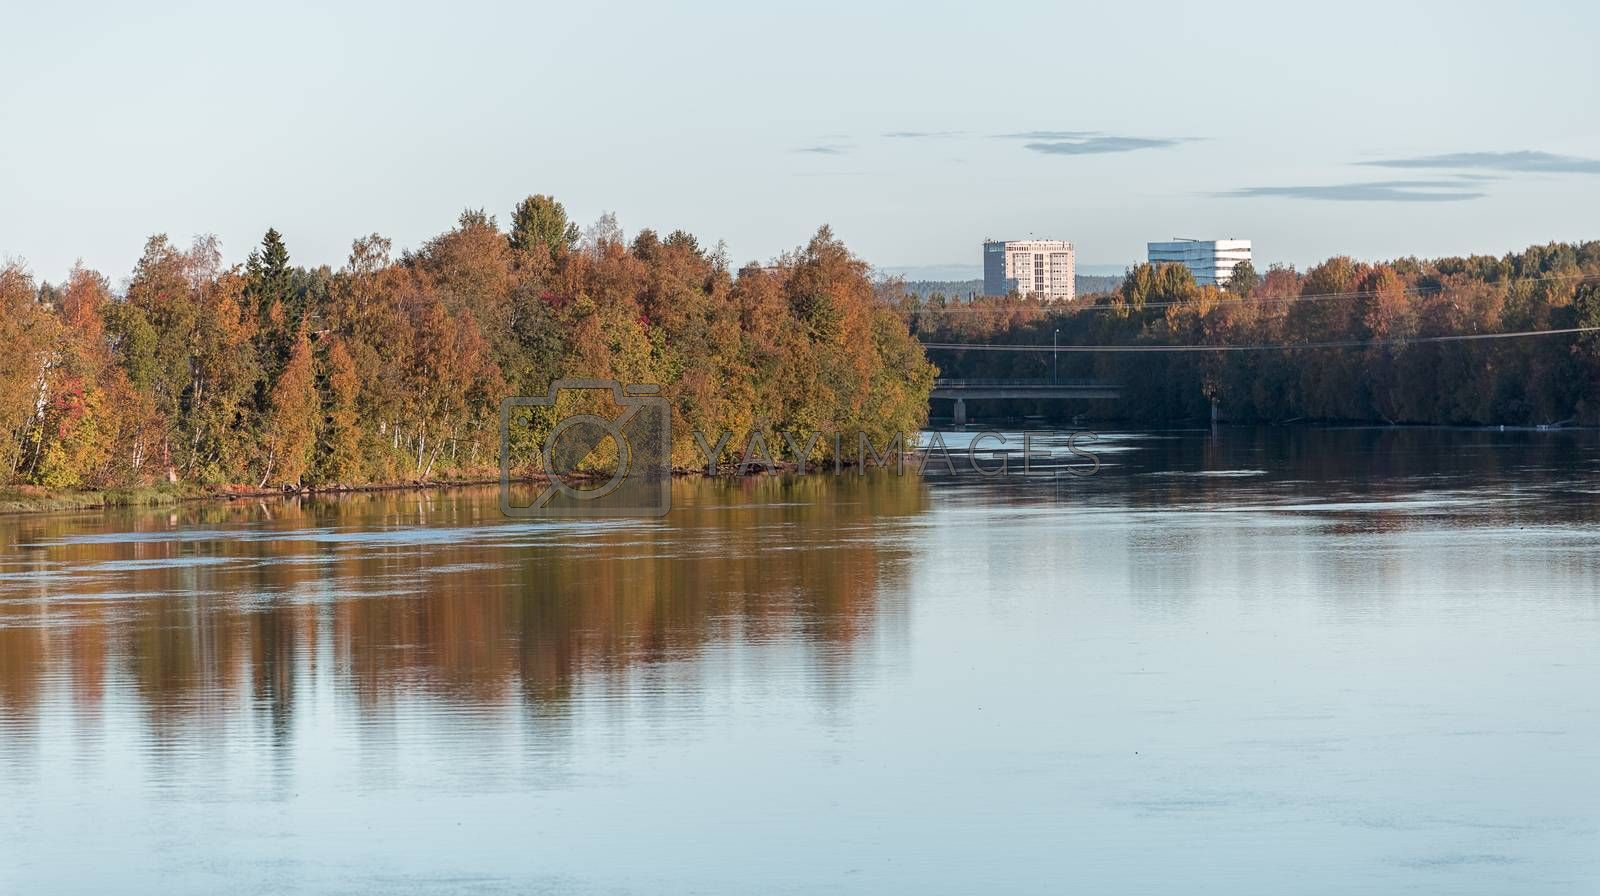 Umea, Sweden and its River in Fall with pair of buildings.